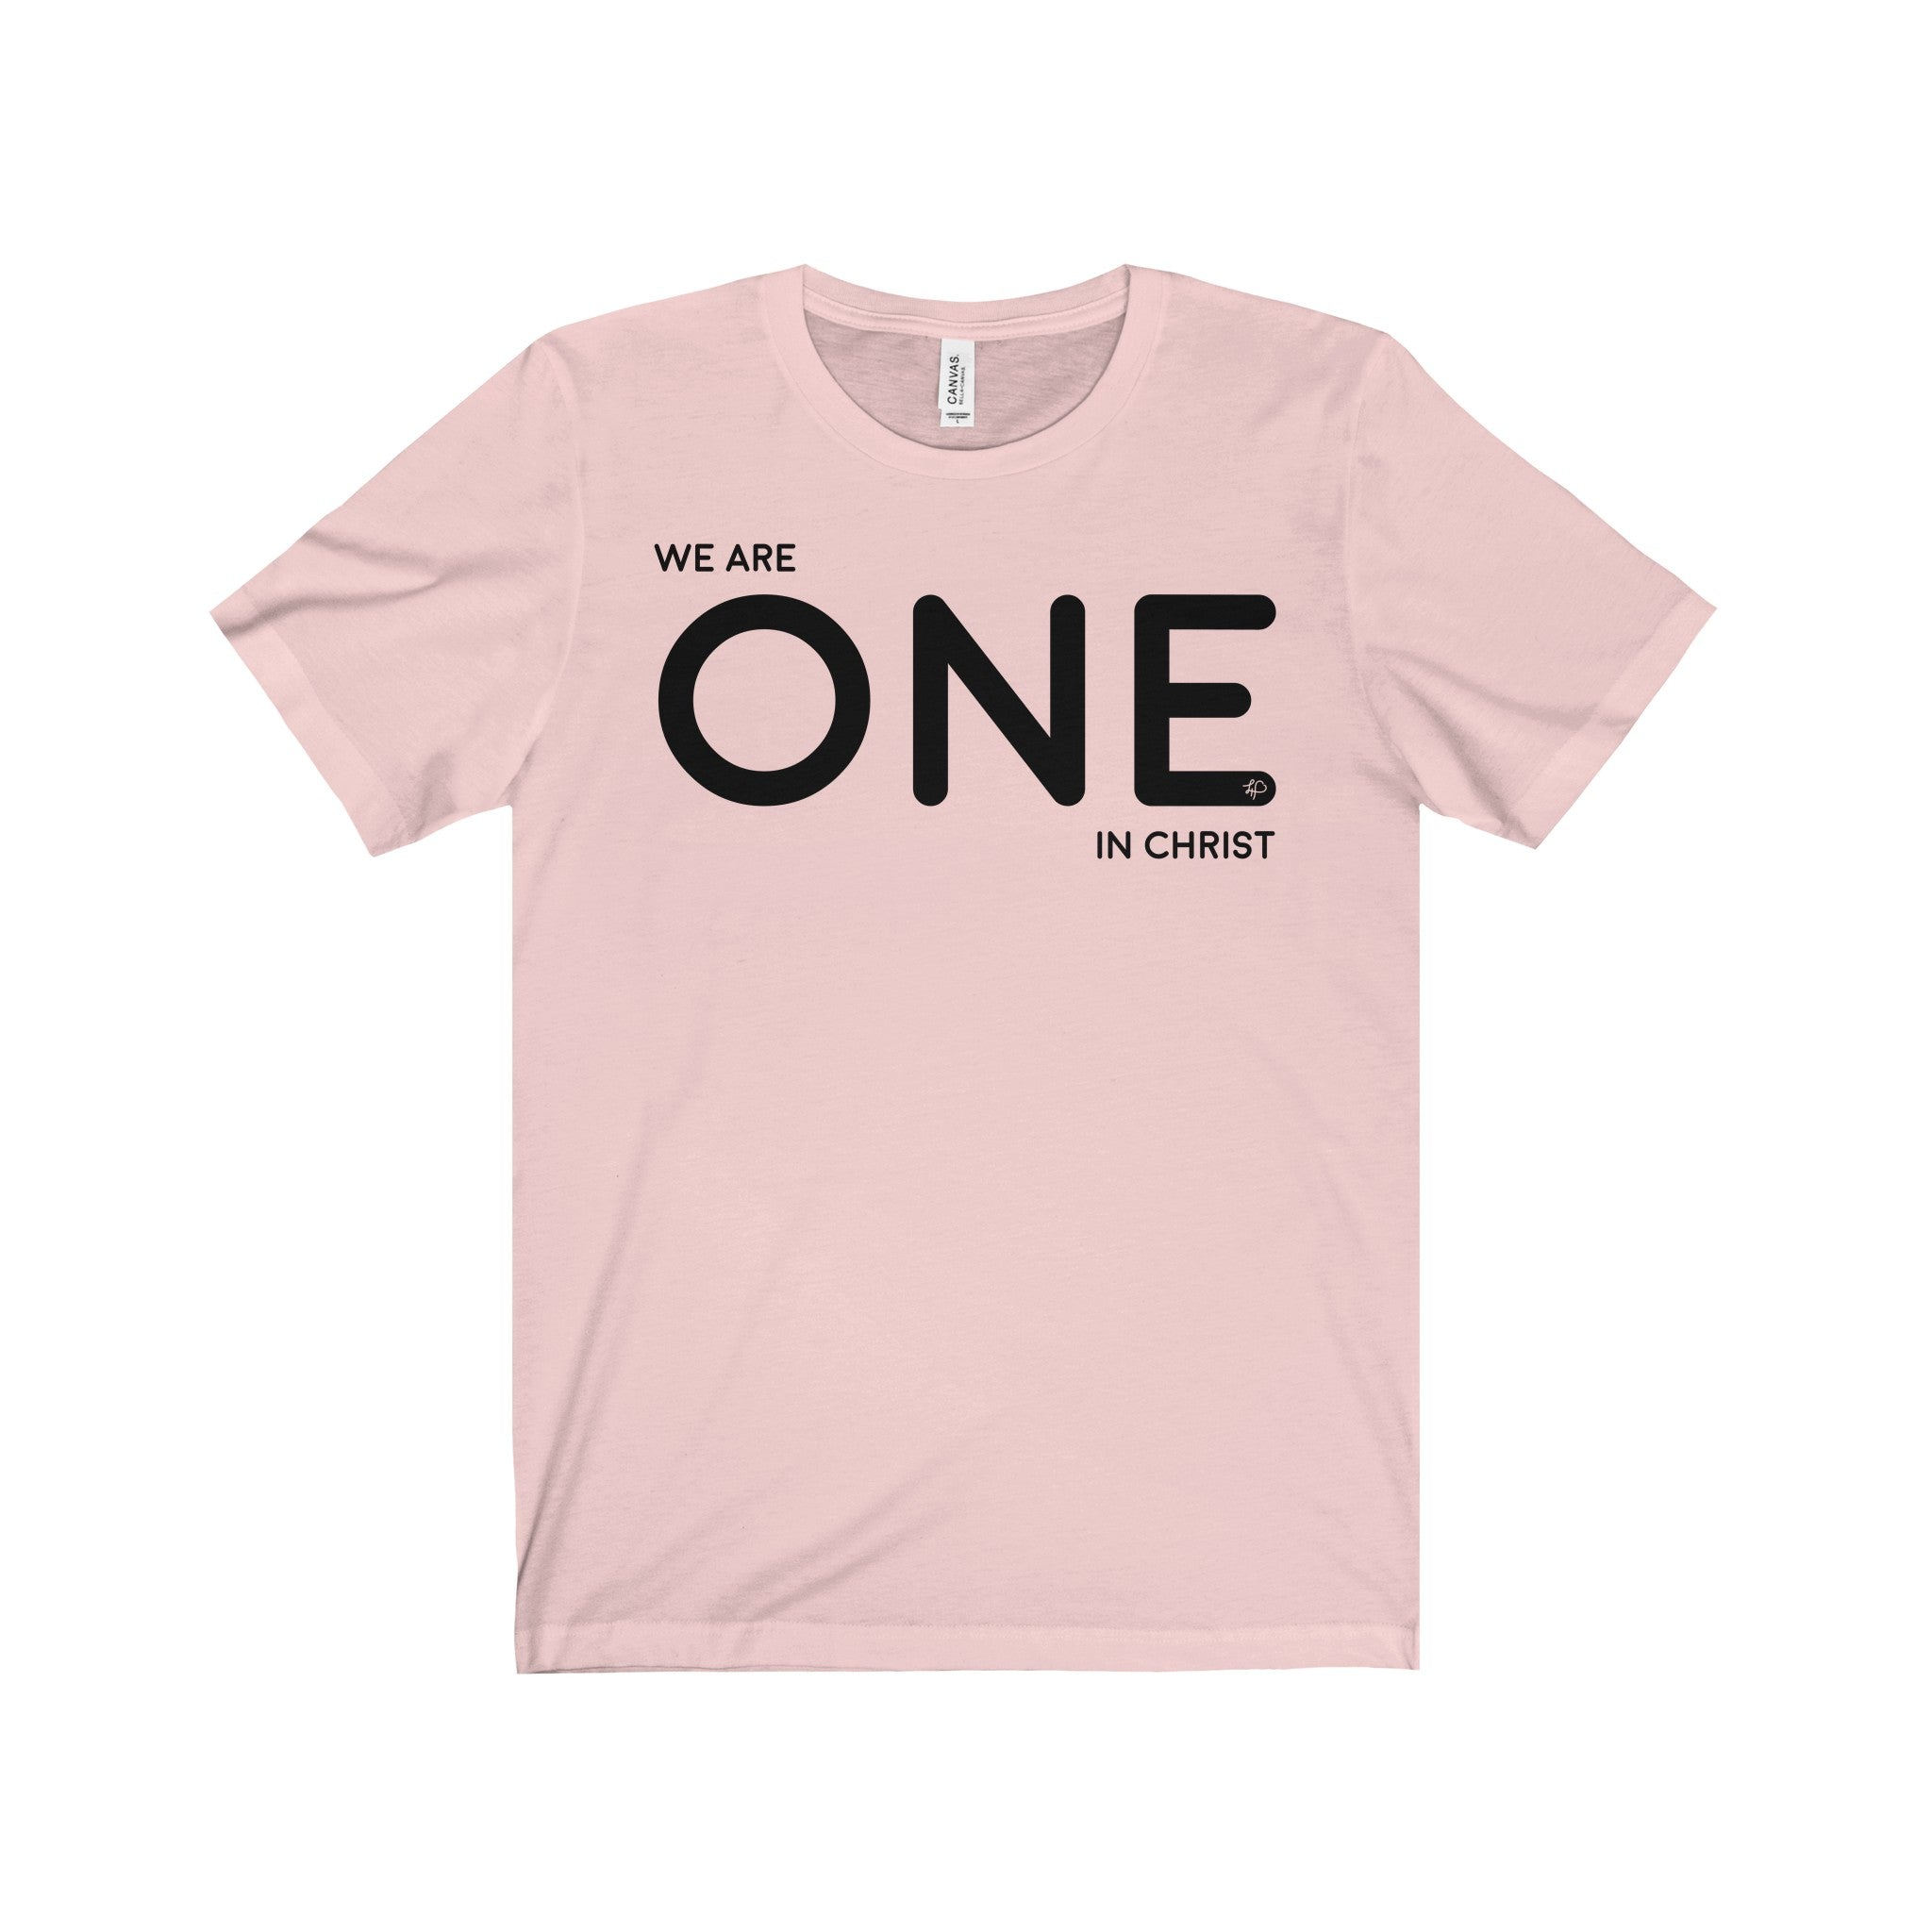 We Are One in Christ Tee